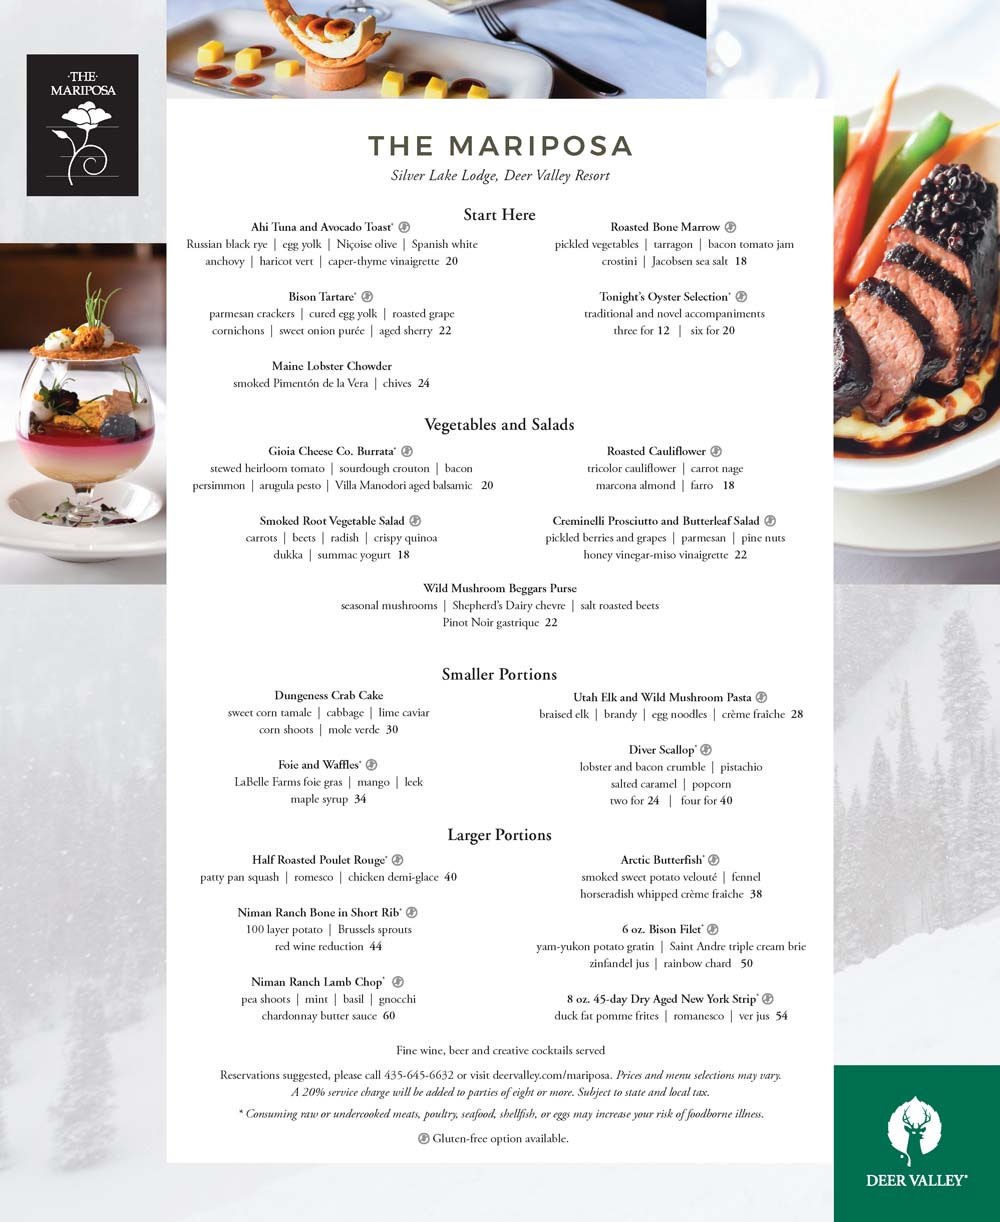 The Mariposa at Deer Valley